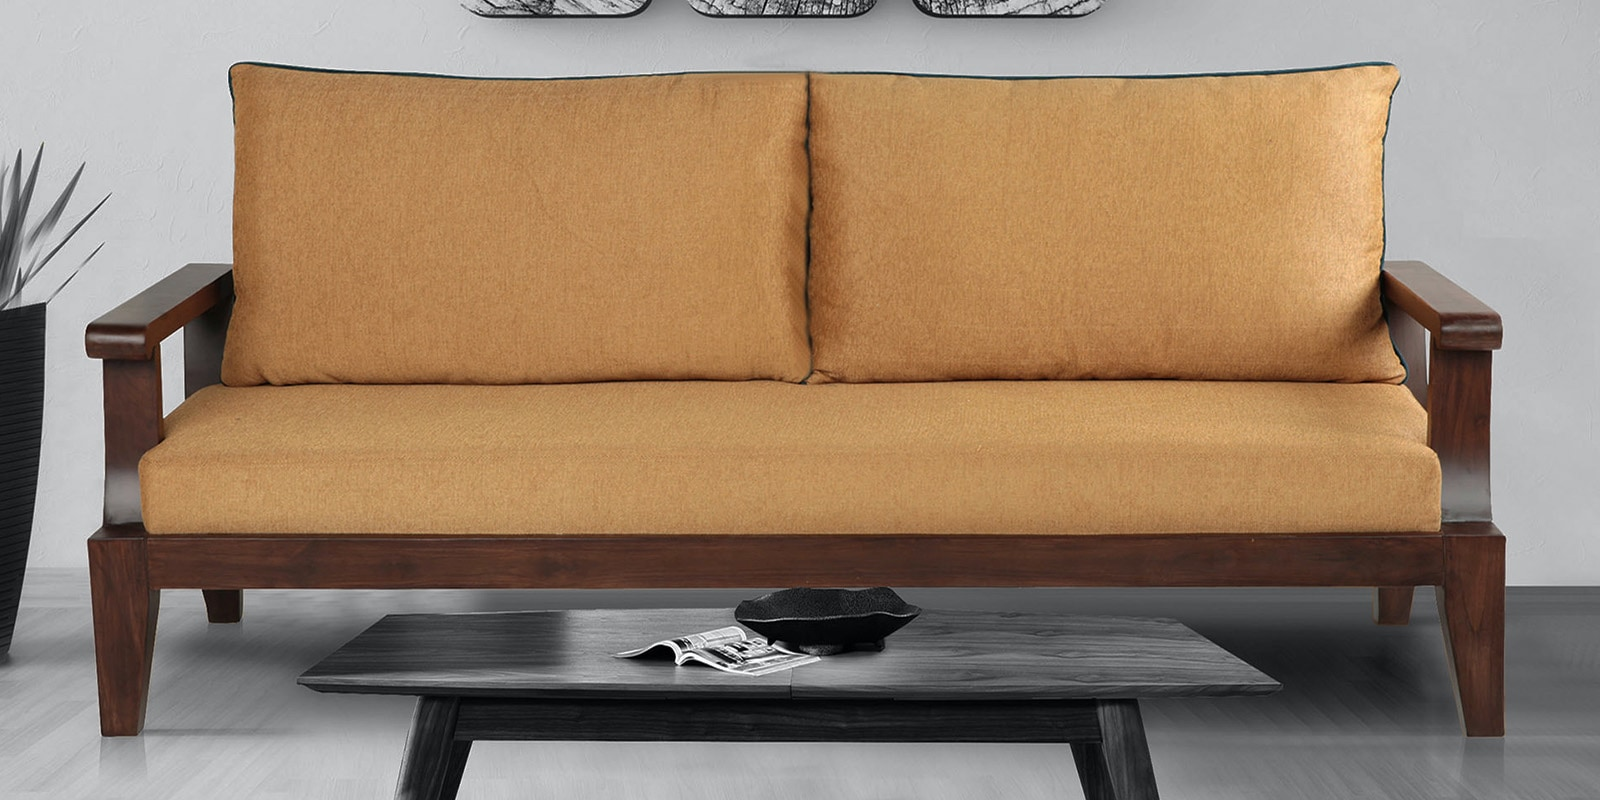 Buy Ohio 3 Seater Sofa In Mustard Colour By Arra Online Contemporary Sofa Sets Sofa Sets Furniture Pepperfry Product